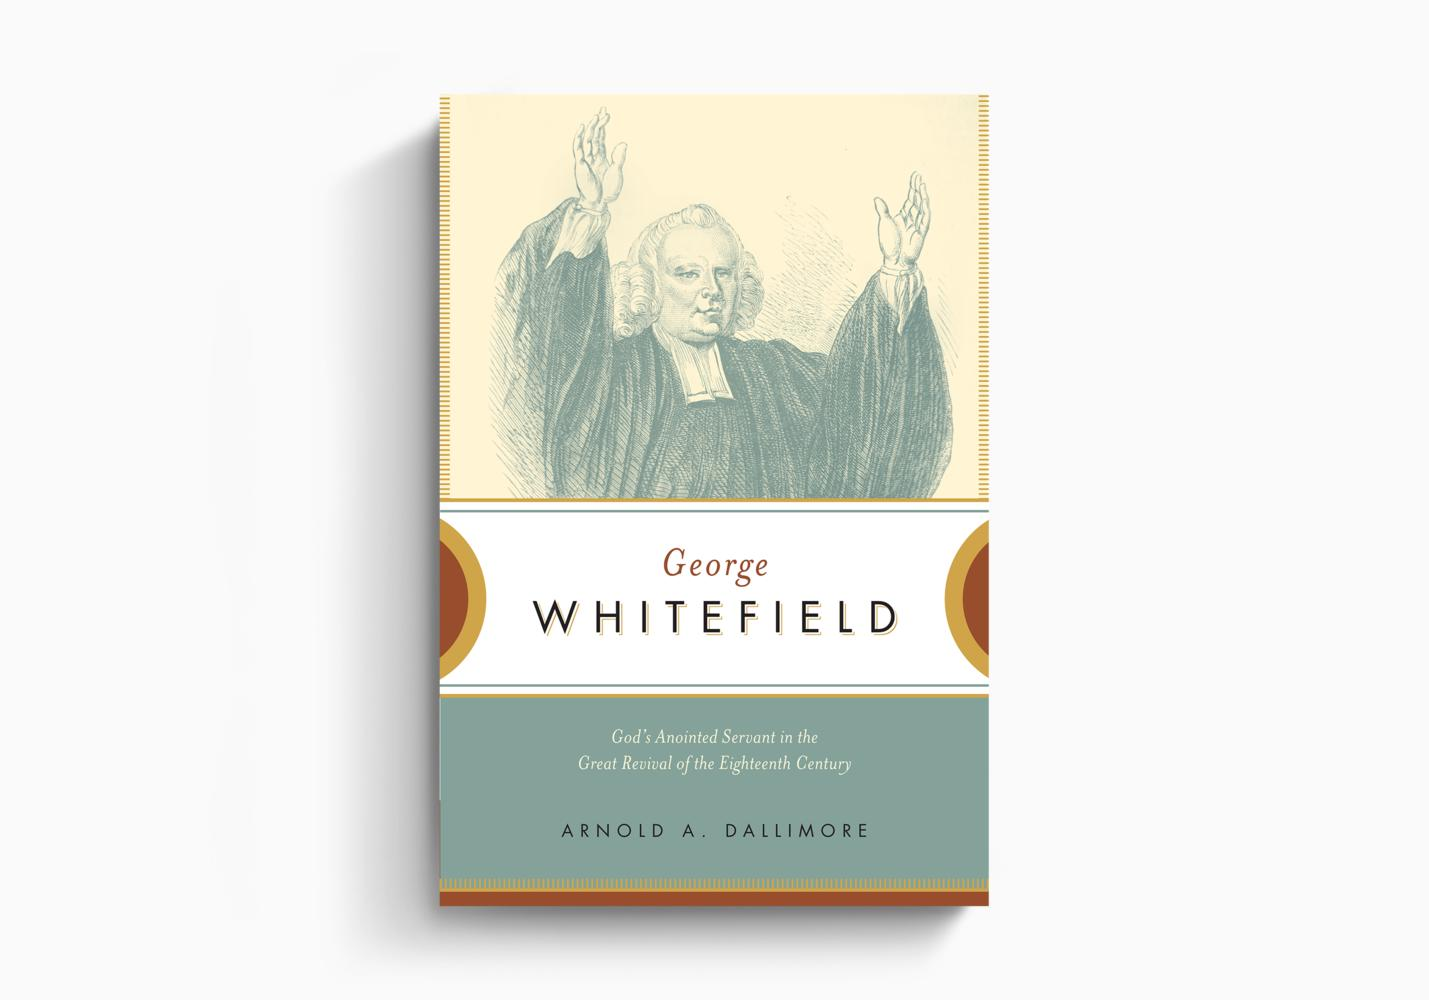 George Whitefield